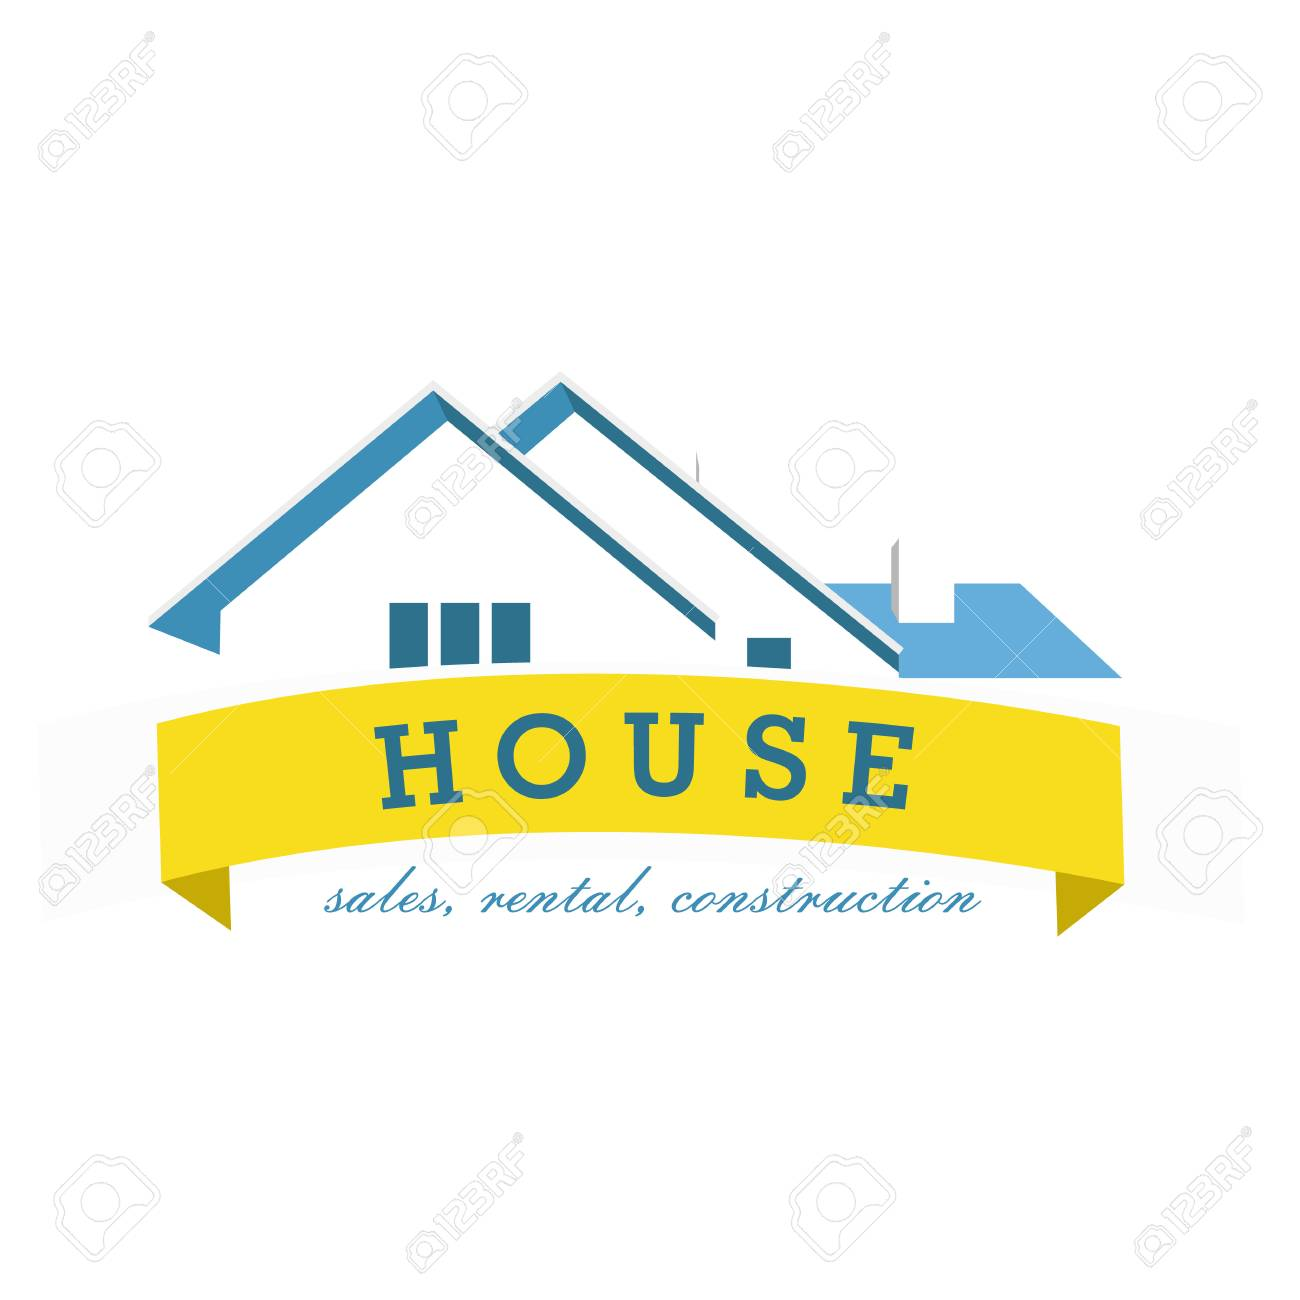 house logo design template realty theme icon building vector rh 123rf com architecture building design vector building design vector free download